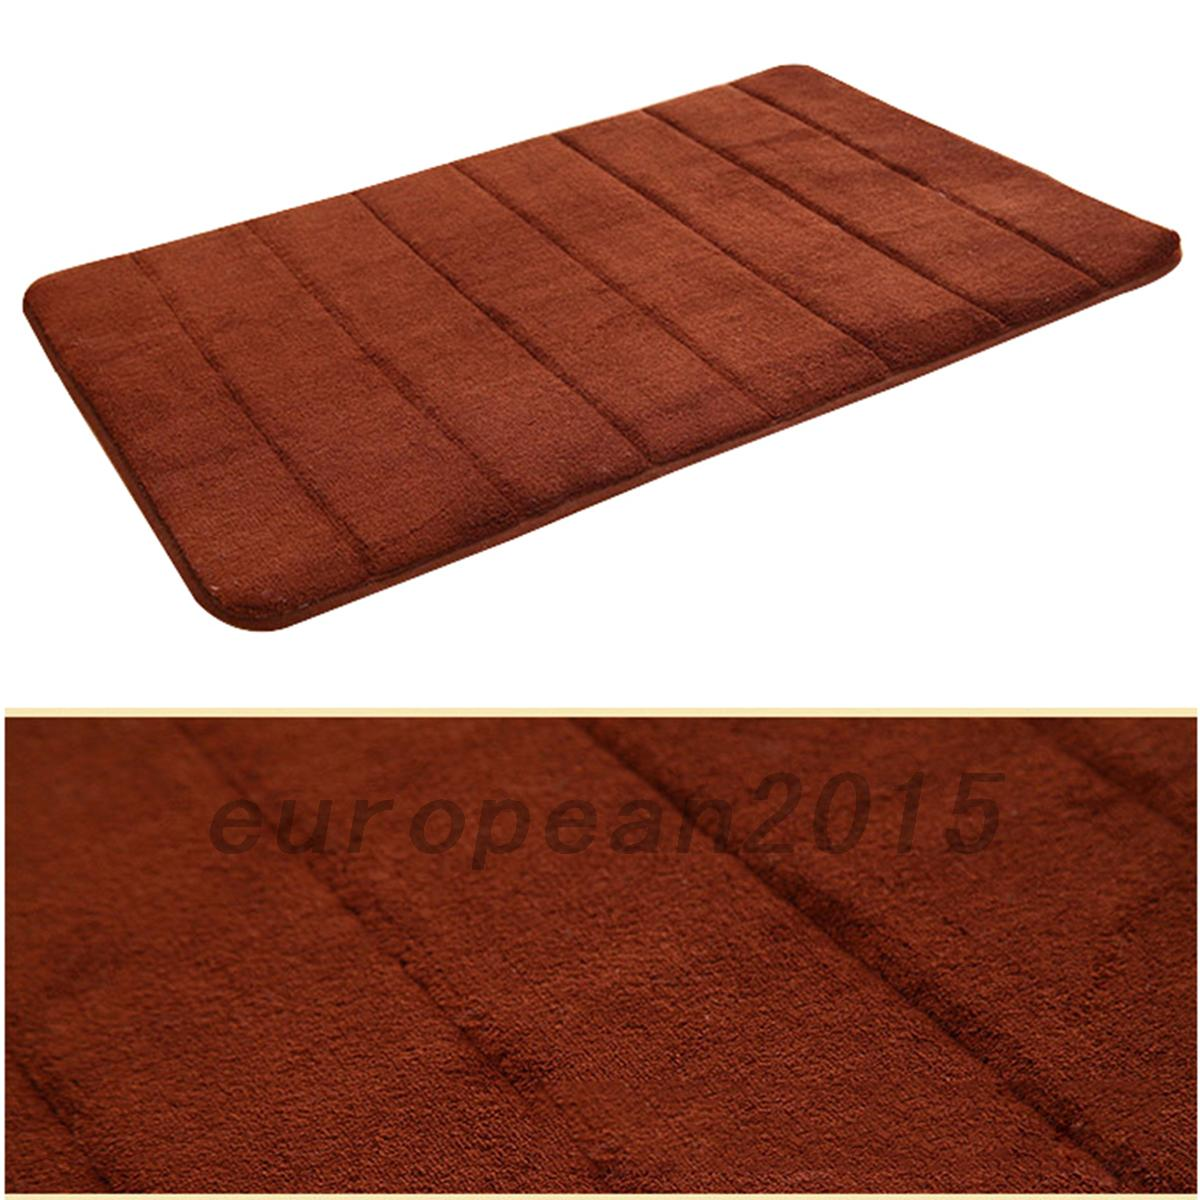 Non Slip Bathroom Mats High Quality Soft Memory Foam Bath Bathroom Floor Shower